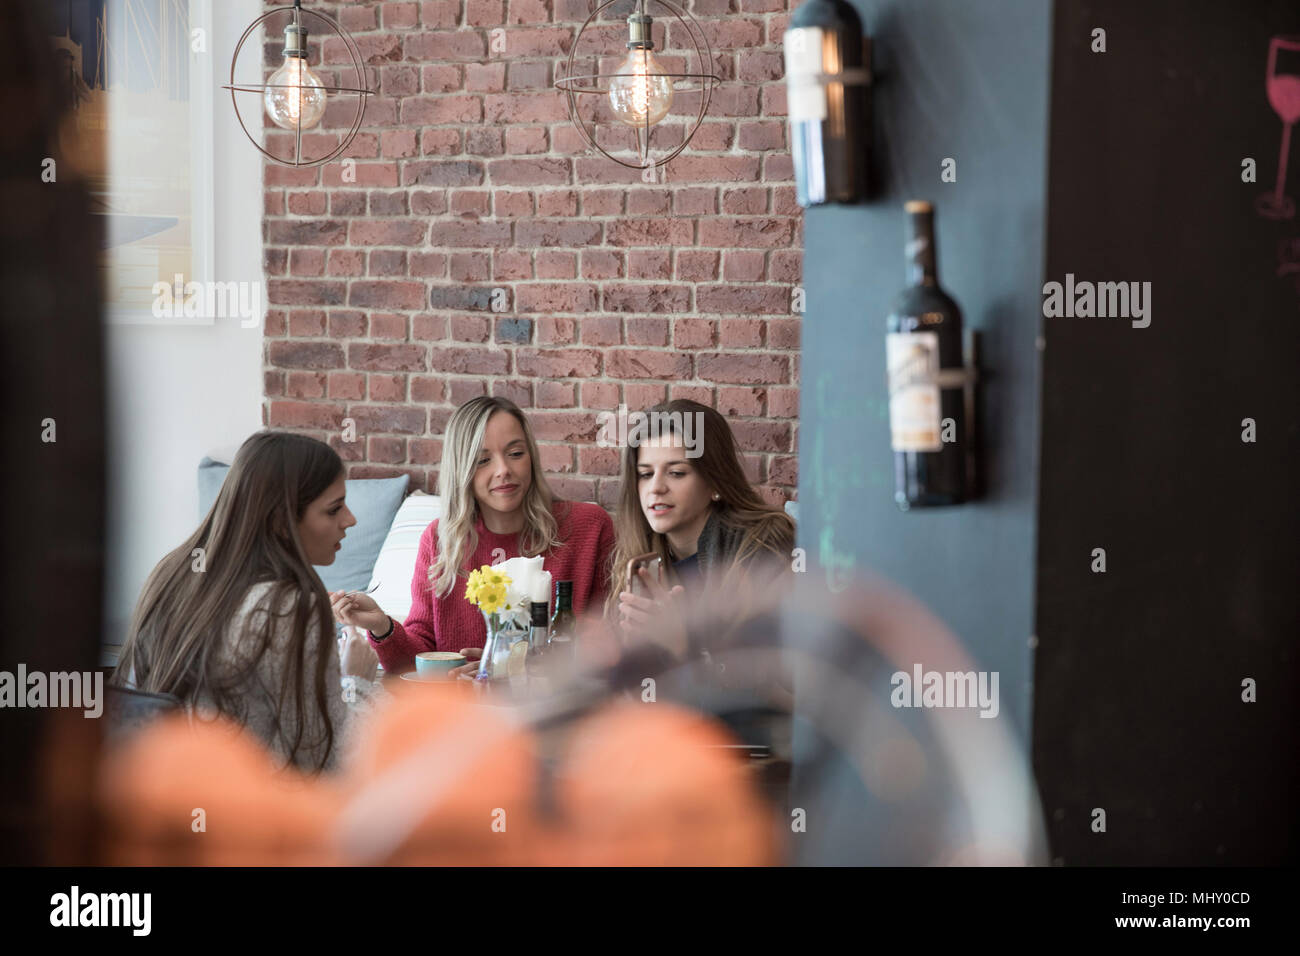 Female friends sitting together in cafe, looking at smartphone Stock Photo